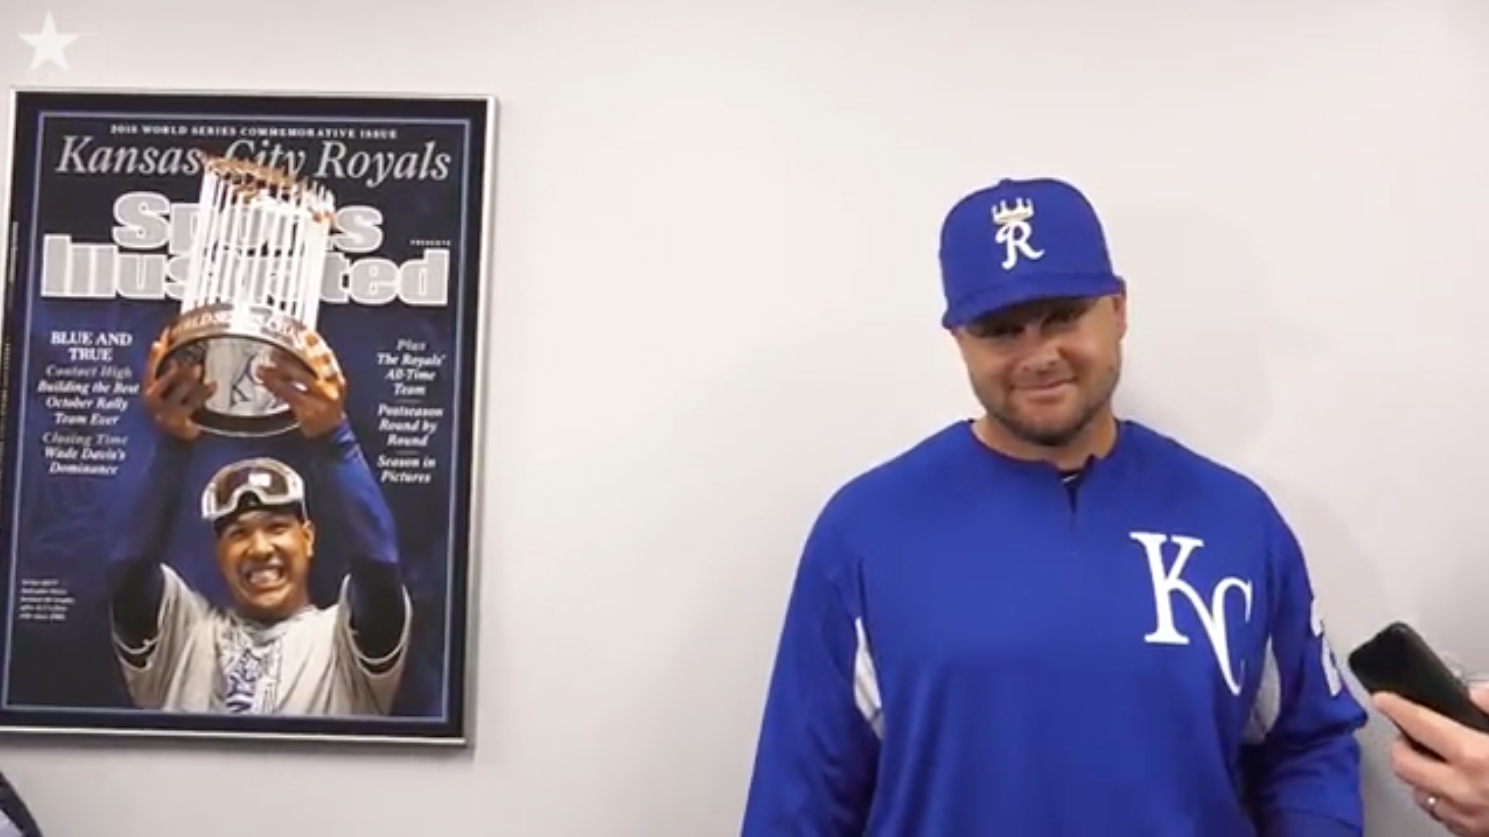 Royals sign Lucas Duda for one year